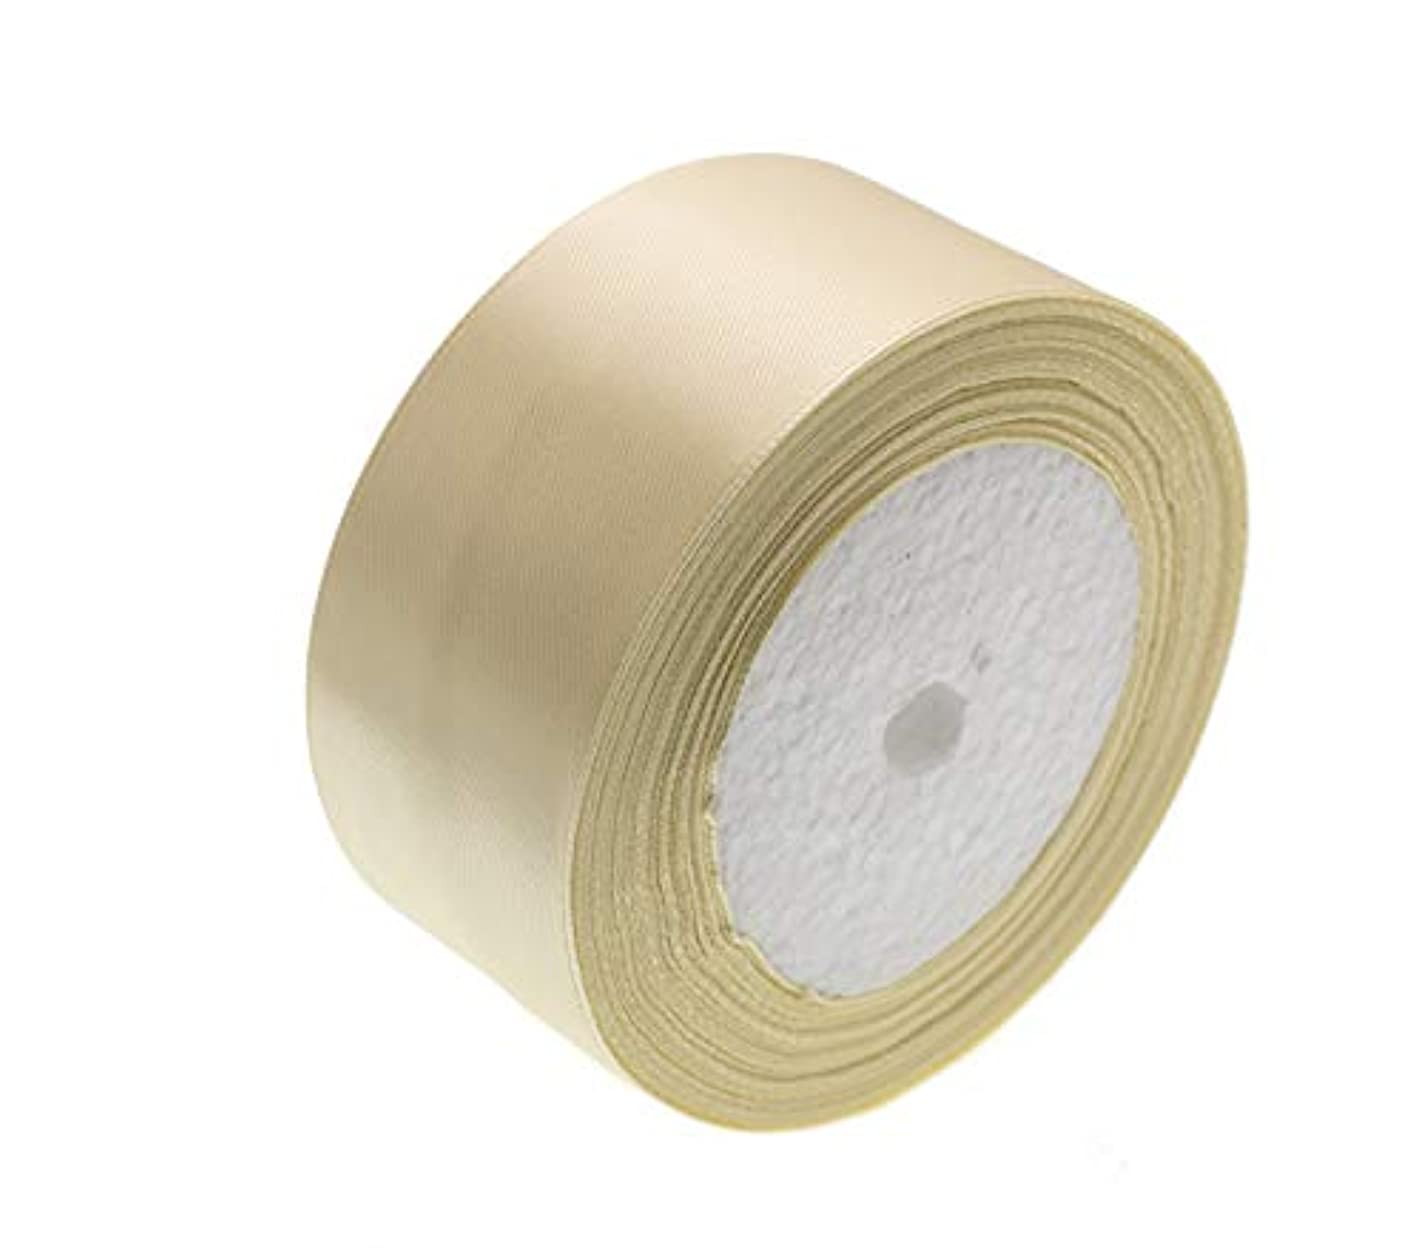 ATRibbons 50 Yards 1-1/2 inch Wide Satin Ribbon Perfect for Wedding,Handmade Bows and Gift Wrapping,25 Yards/Roll x 2 Rolls (Beige)